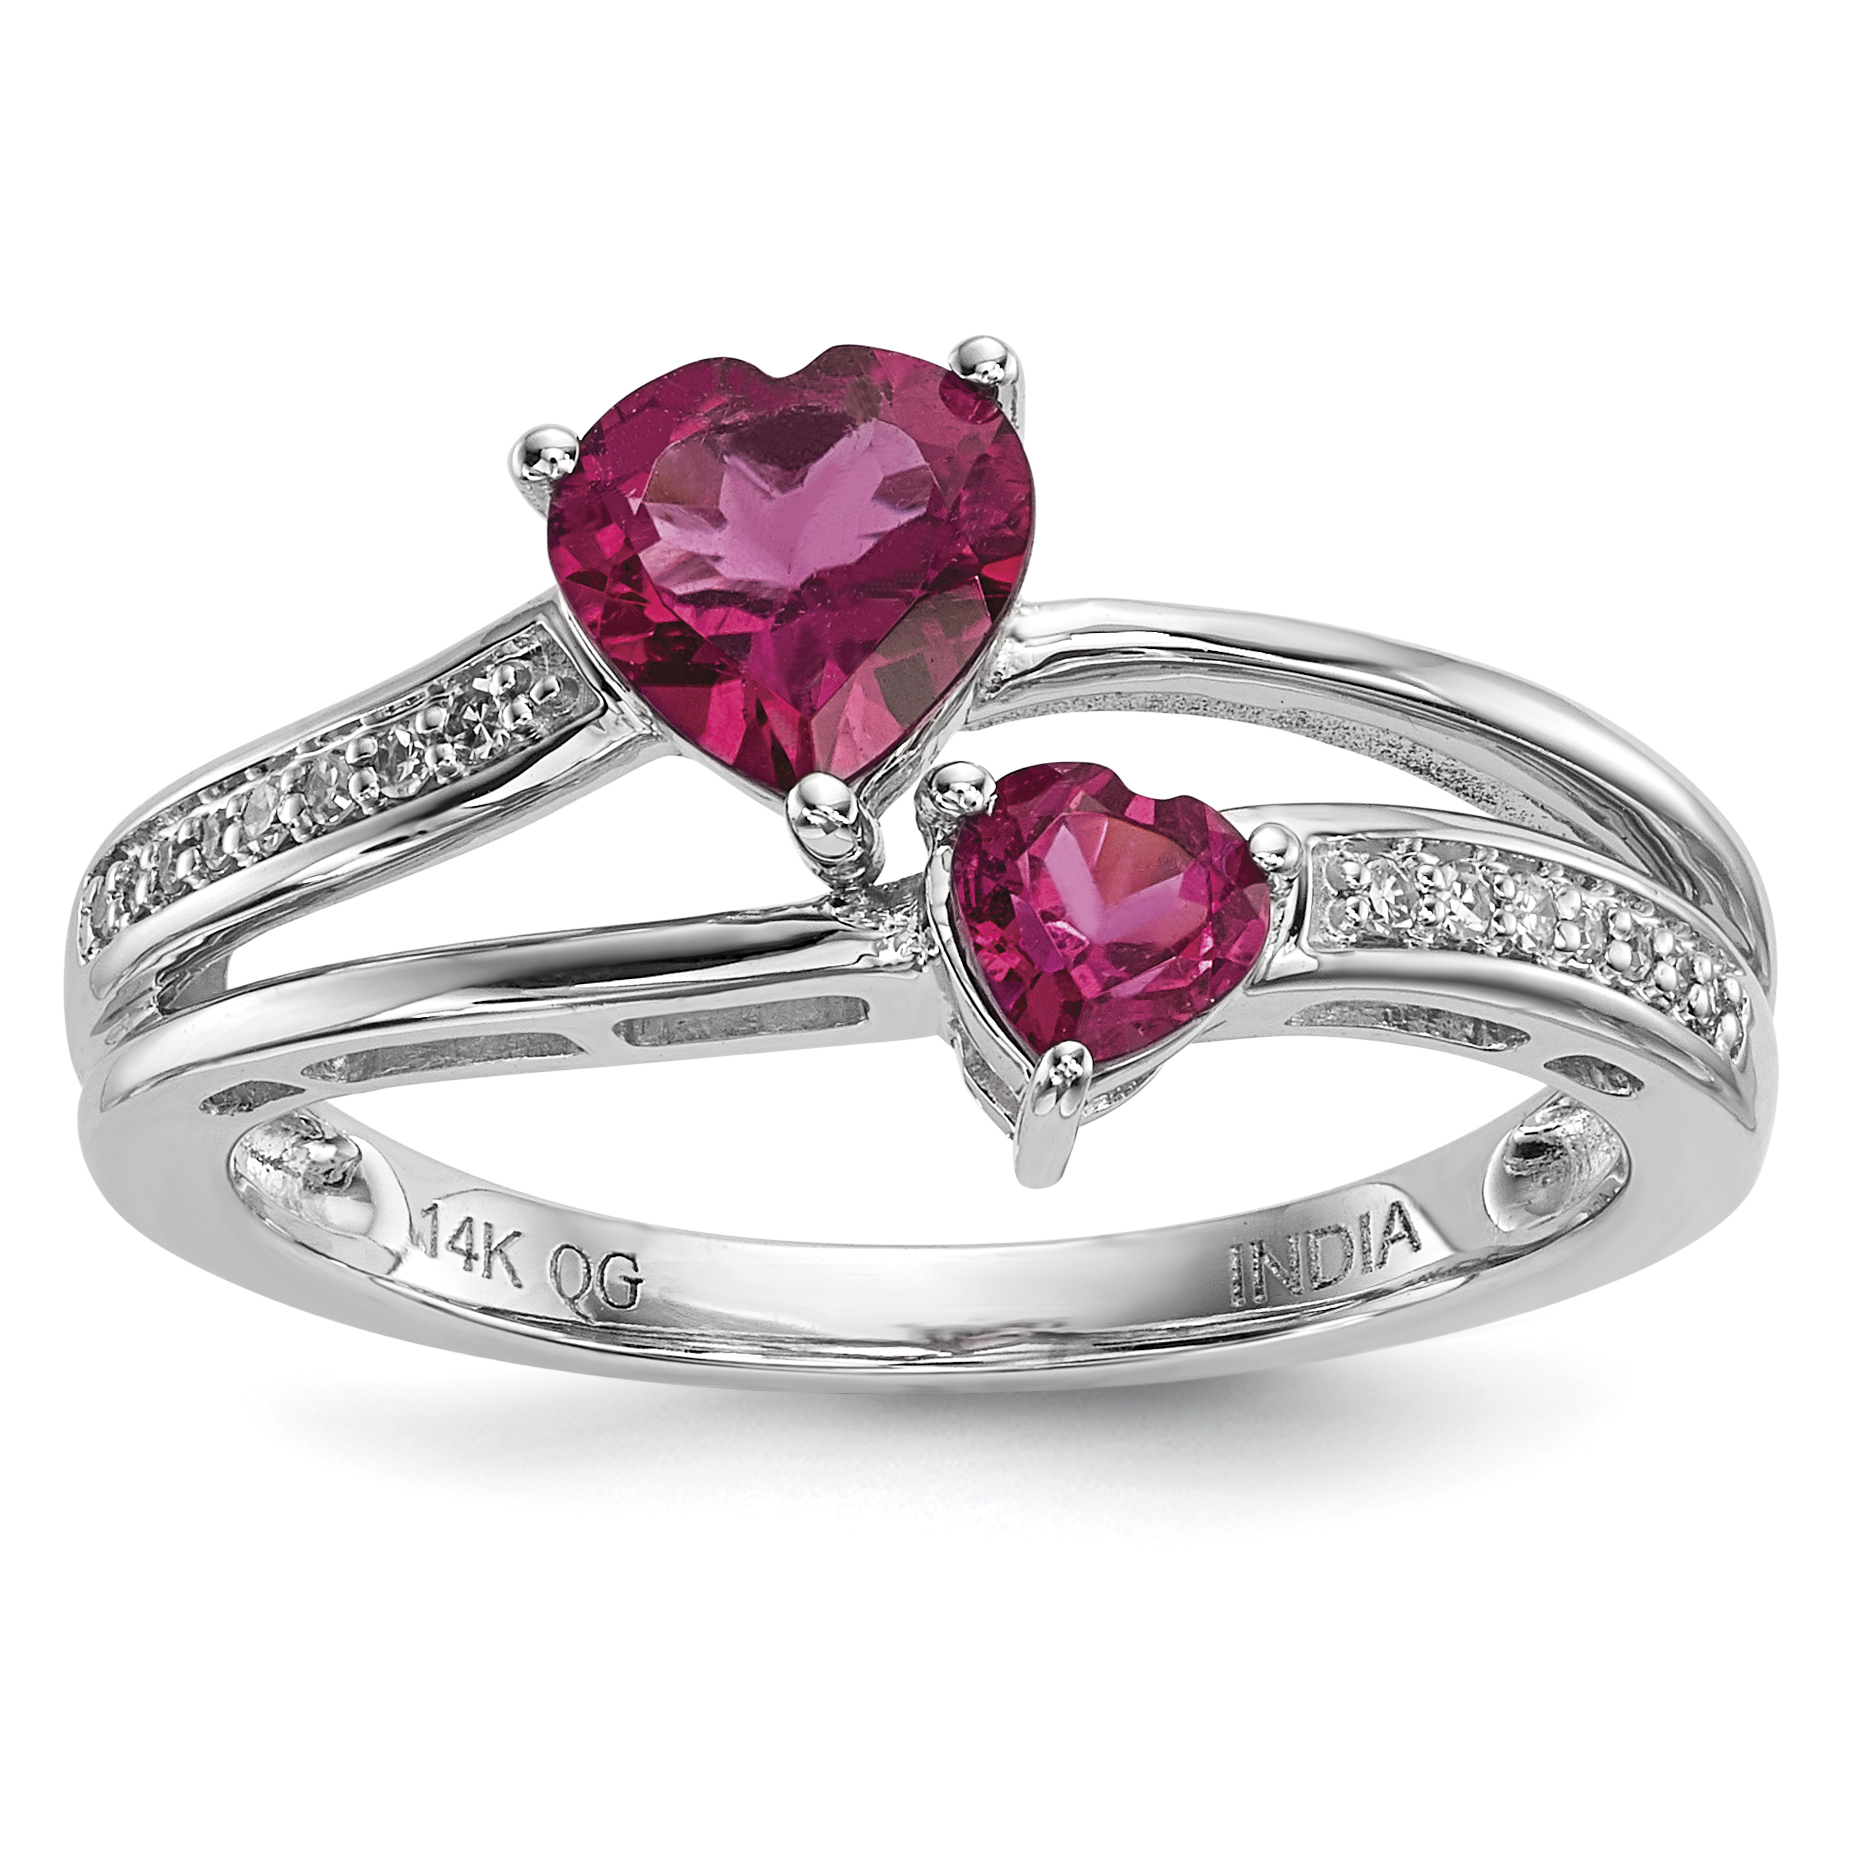 14k White Gold Diamond & Pink Tourmaline Ring Size by